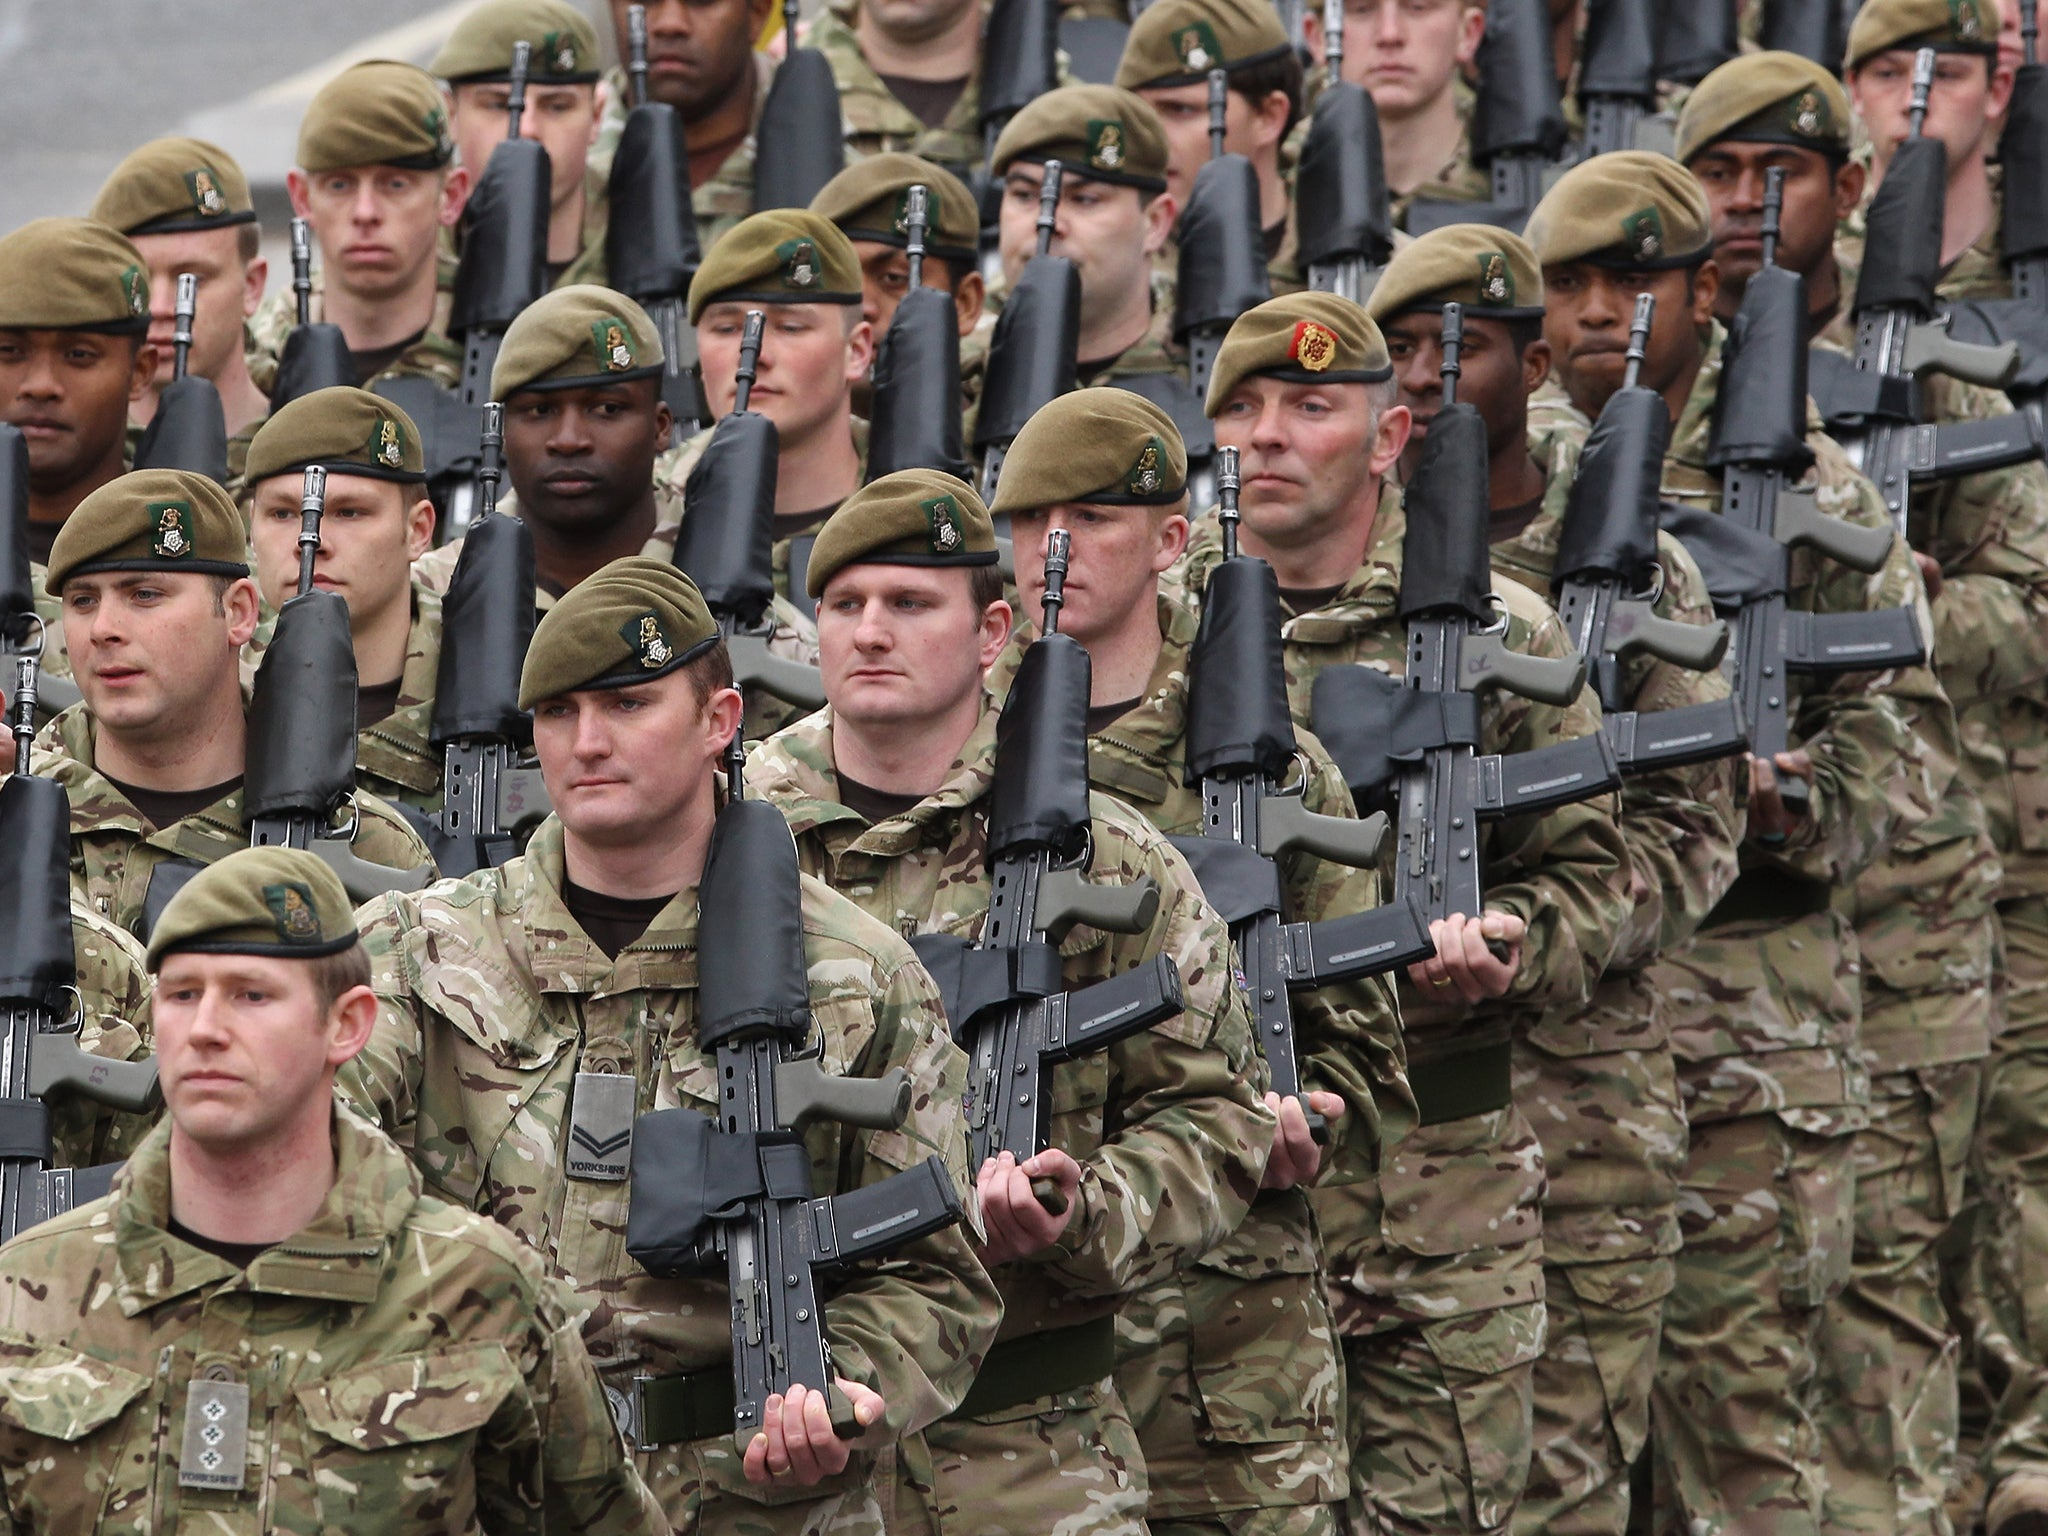 Army is no longer able to defend UK properly, say 1 in 2 | The Independent